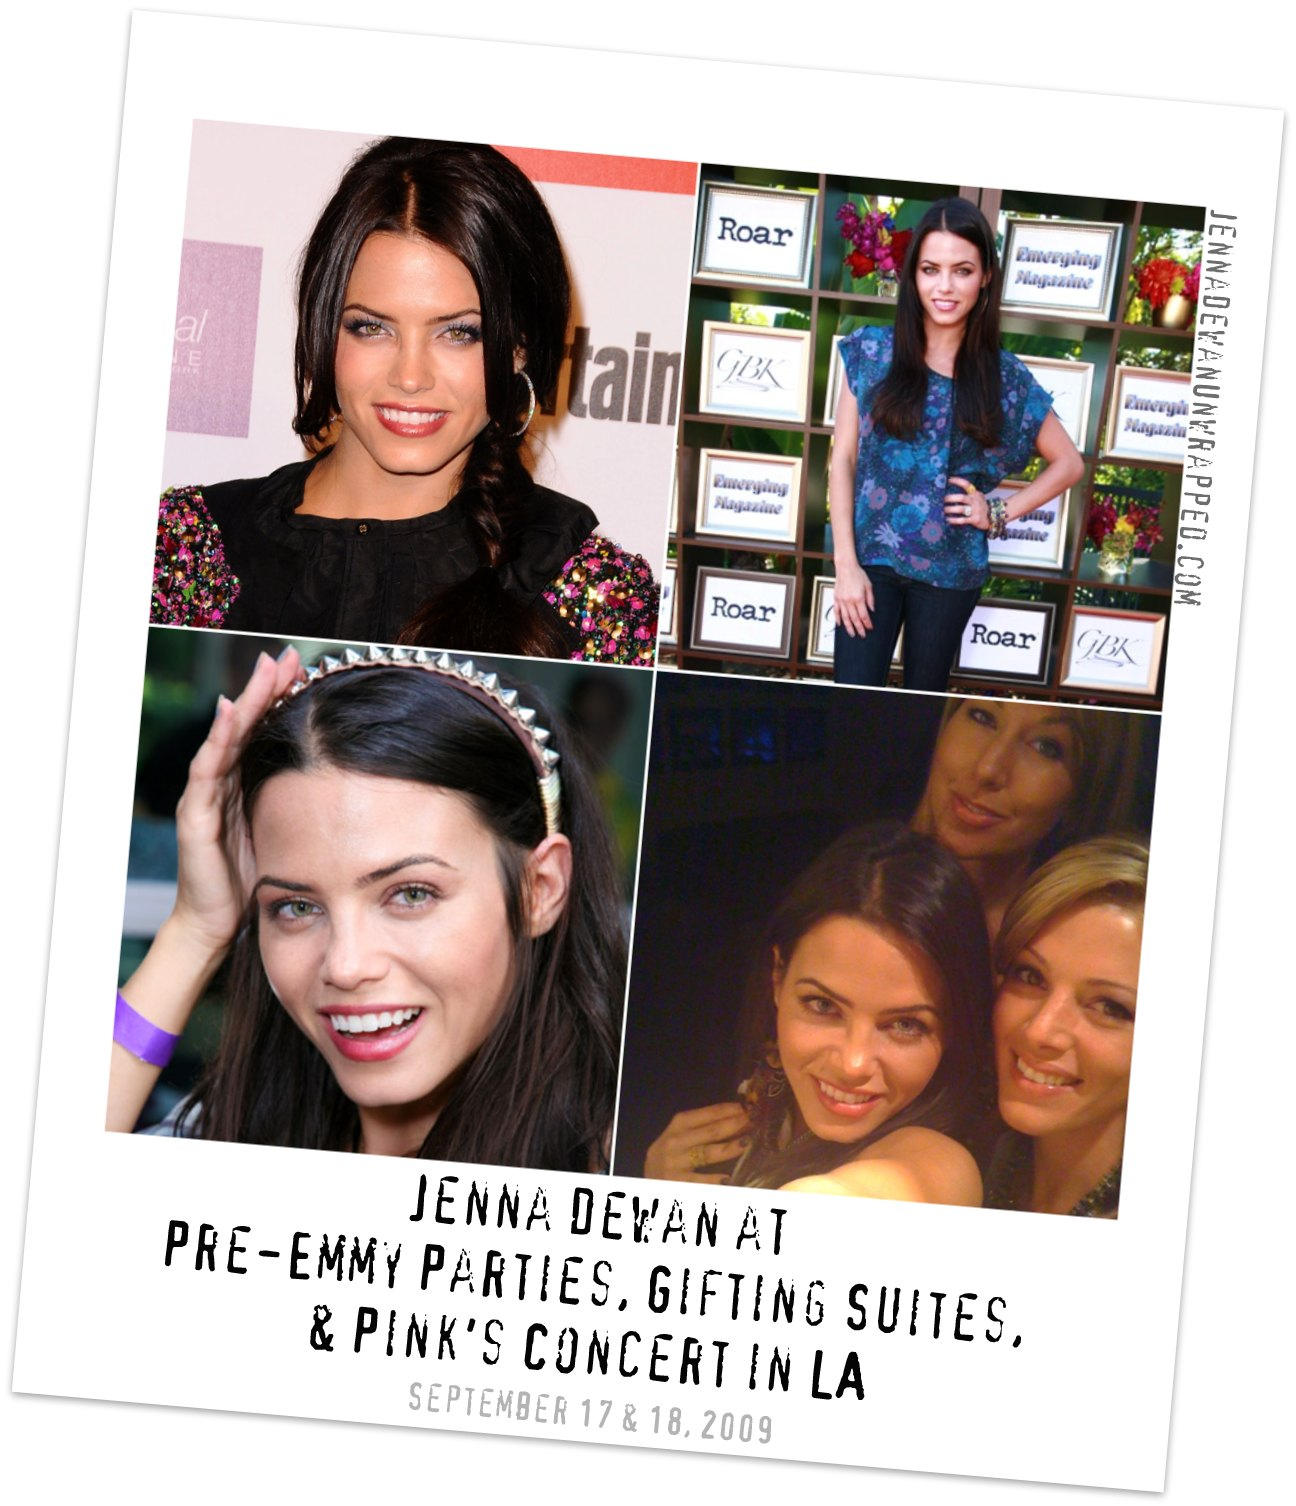 Jenna Dewan at Pre-Emmy Events & Pink Concert